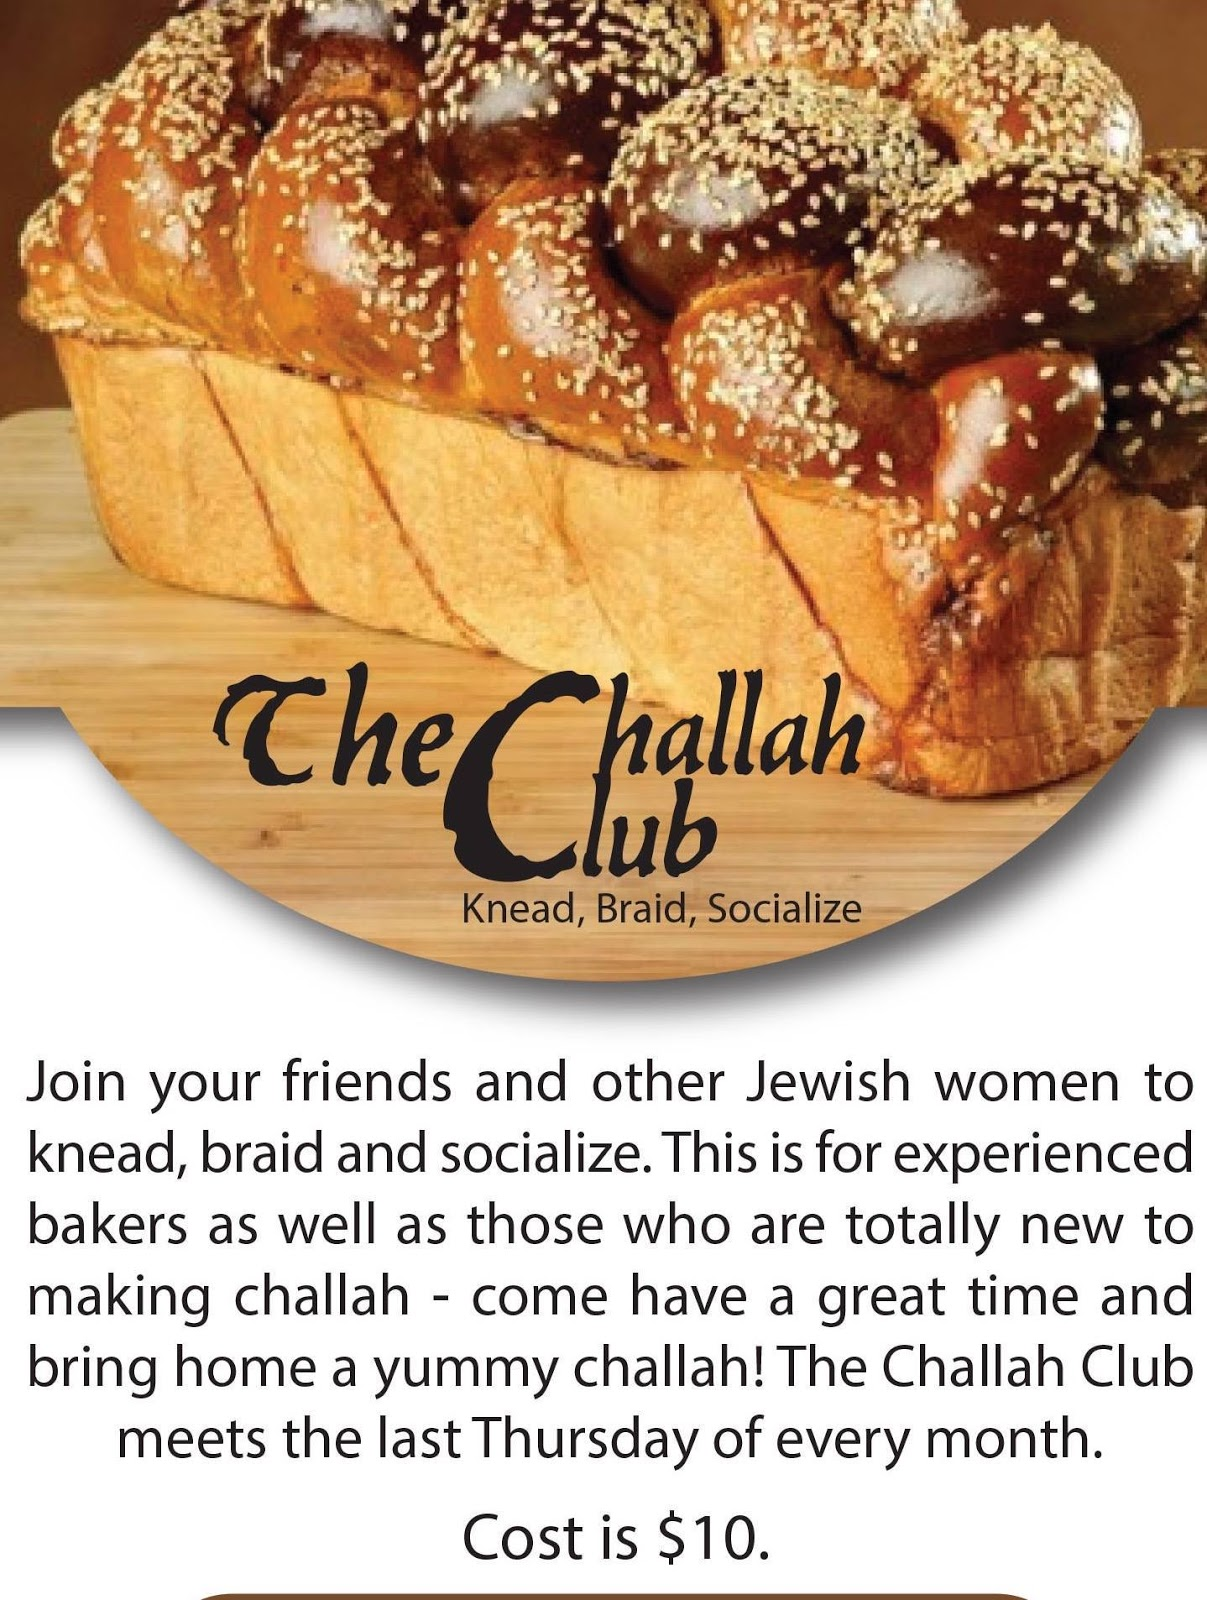 Join Your Friends And Other Jewish Women To Make Challah. This Is For  Experienced Bakers As Well As Those That Are New To Making Challah.